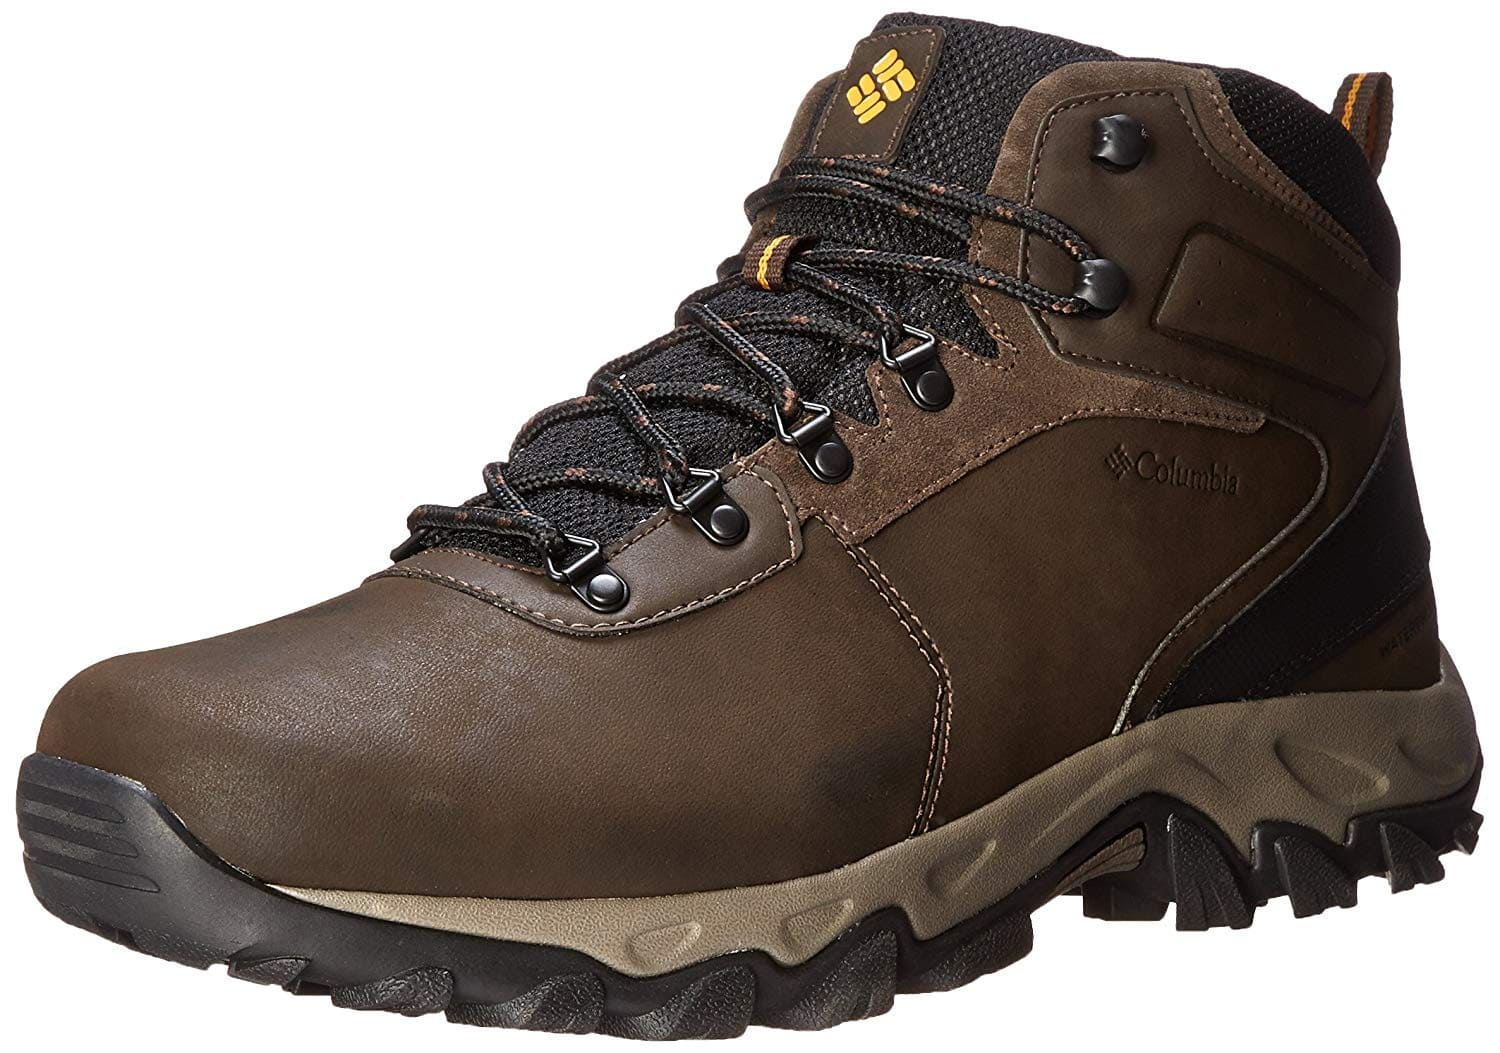 Columbia Men's Newton Ridge Plus II Waterproof Hiking Boot Side